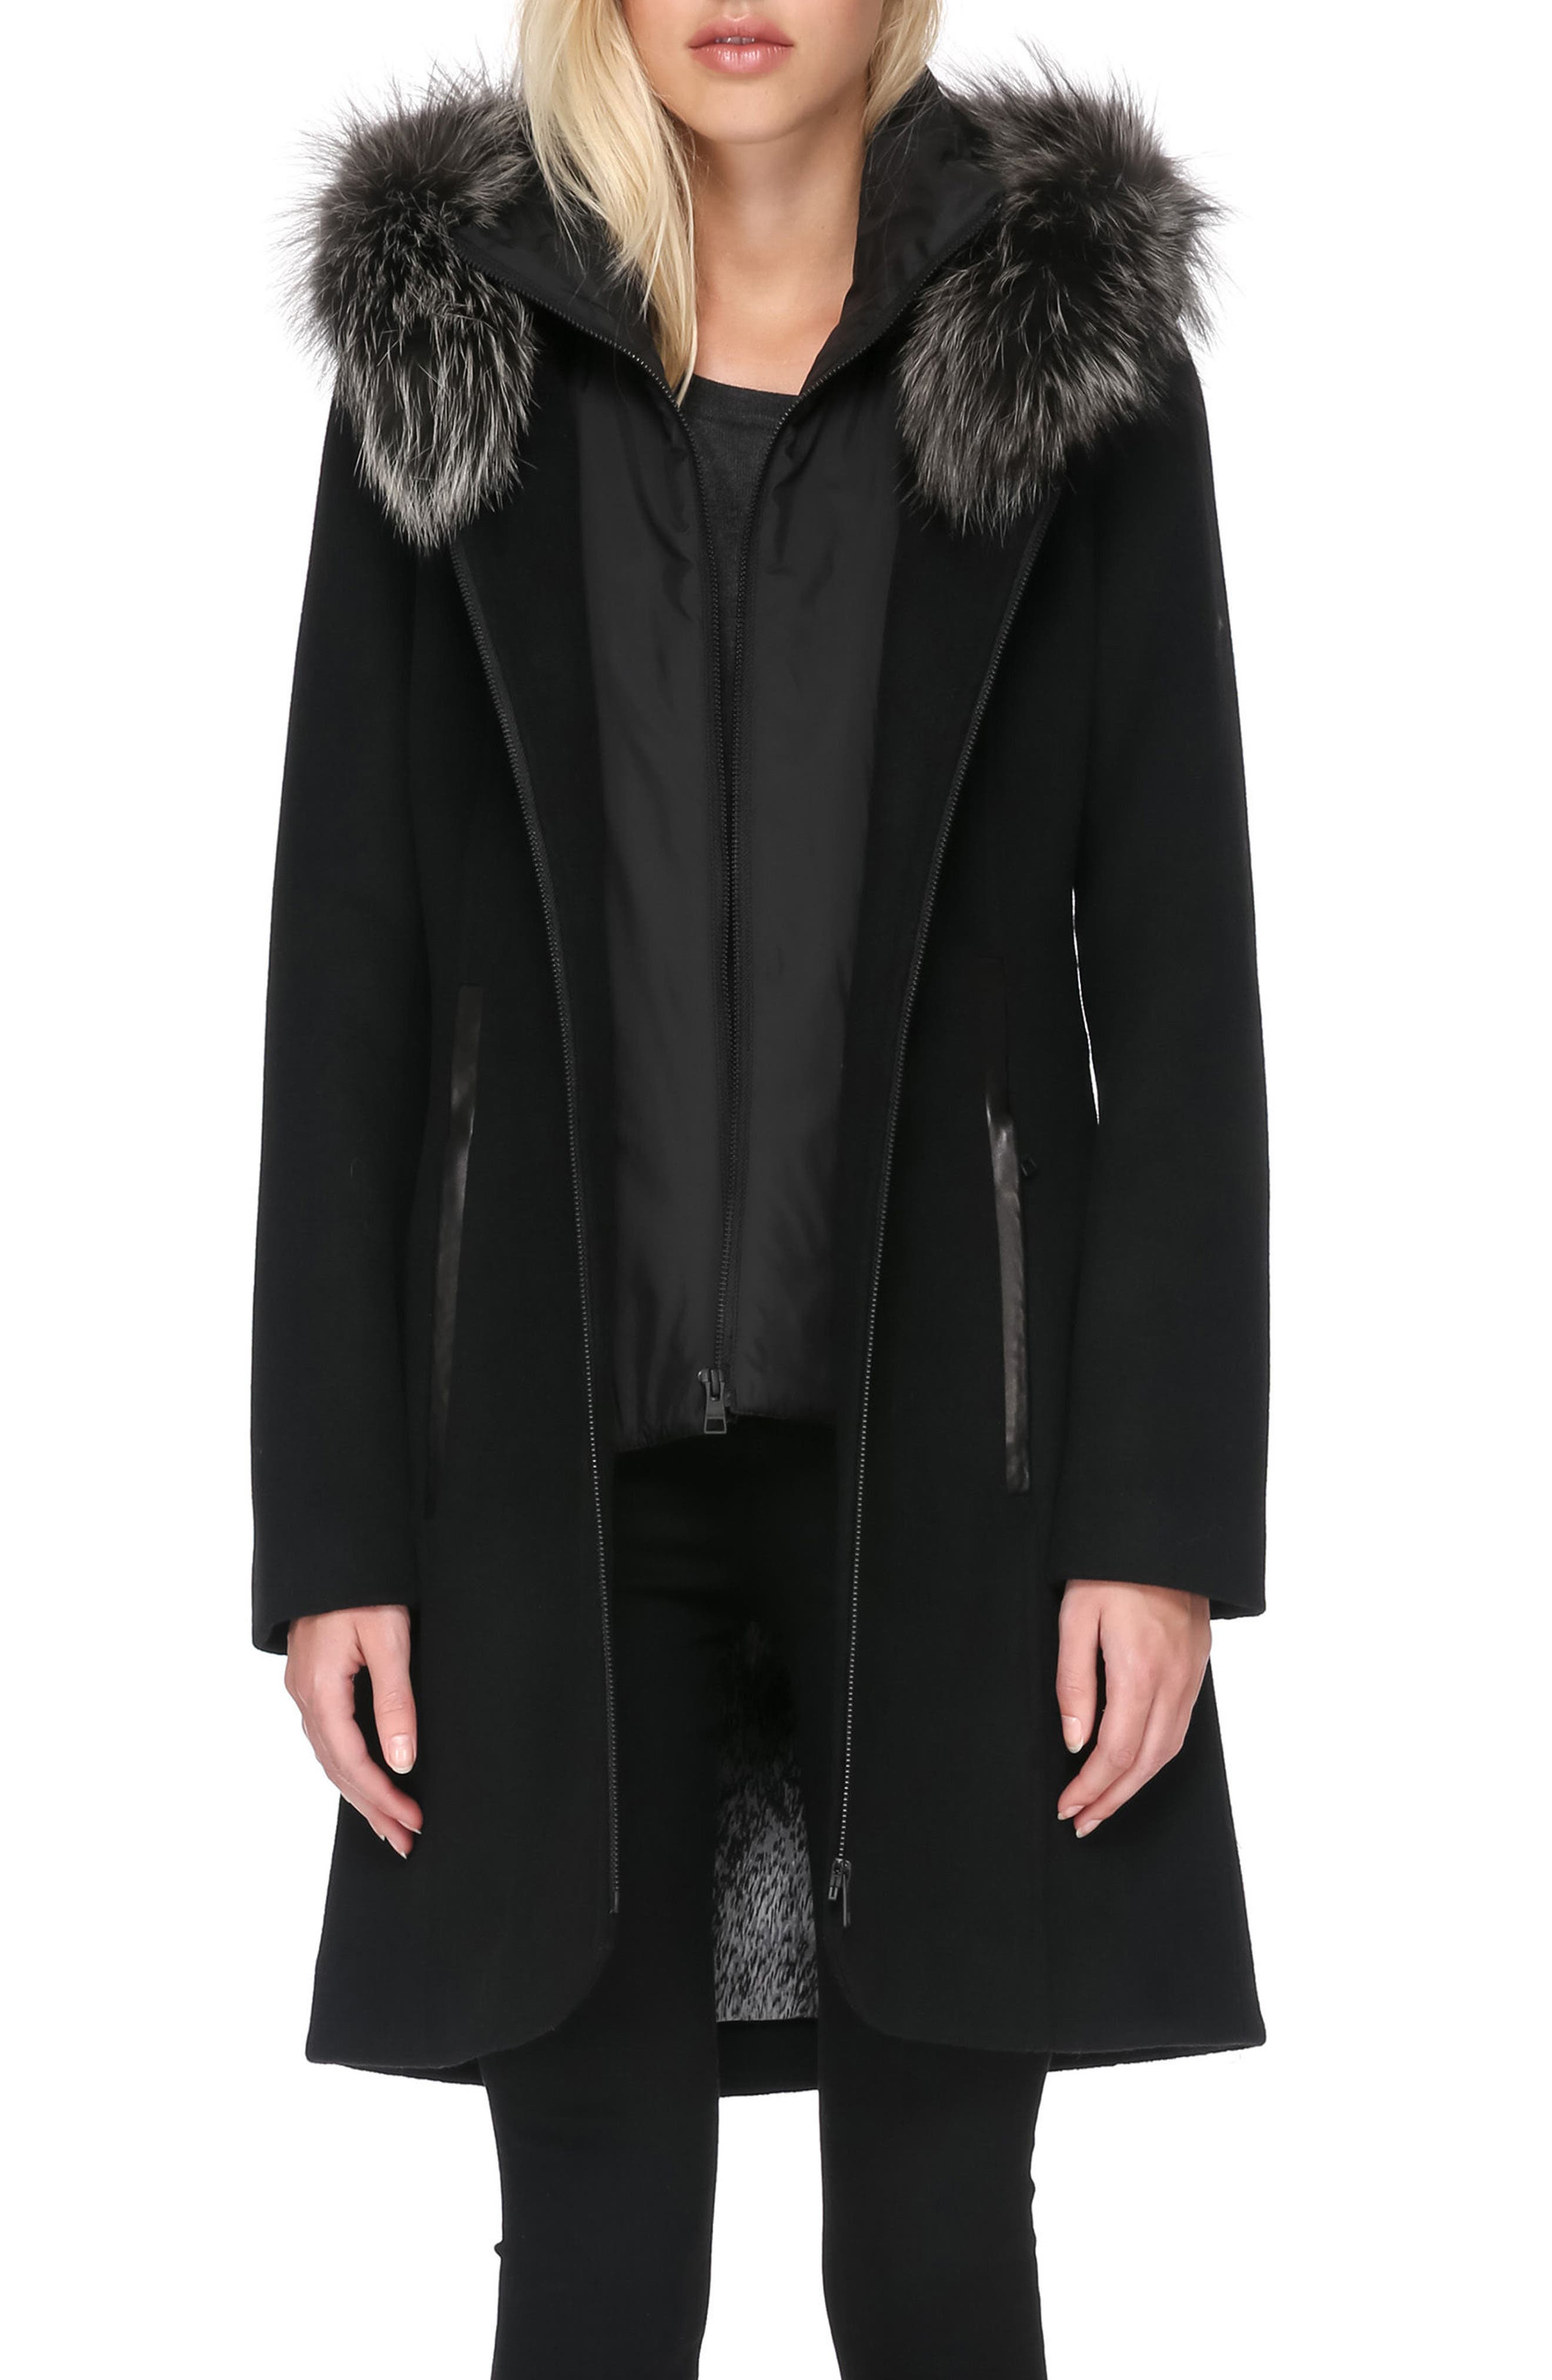 Hooded Wool Blend Coat with Detachable Genuine Fox Fur,                             Main thumbnail 1, color,                             001